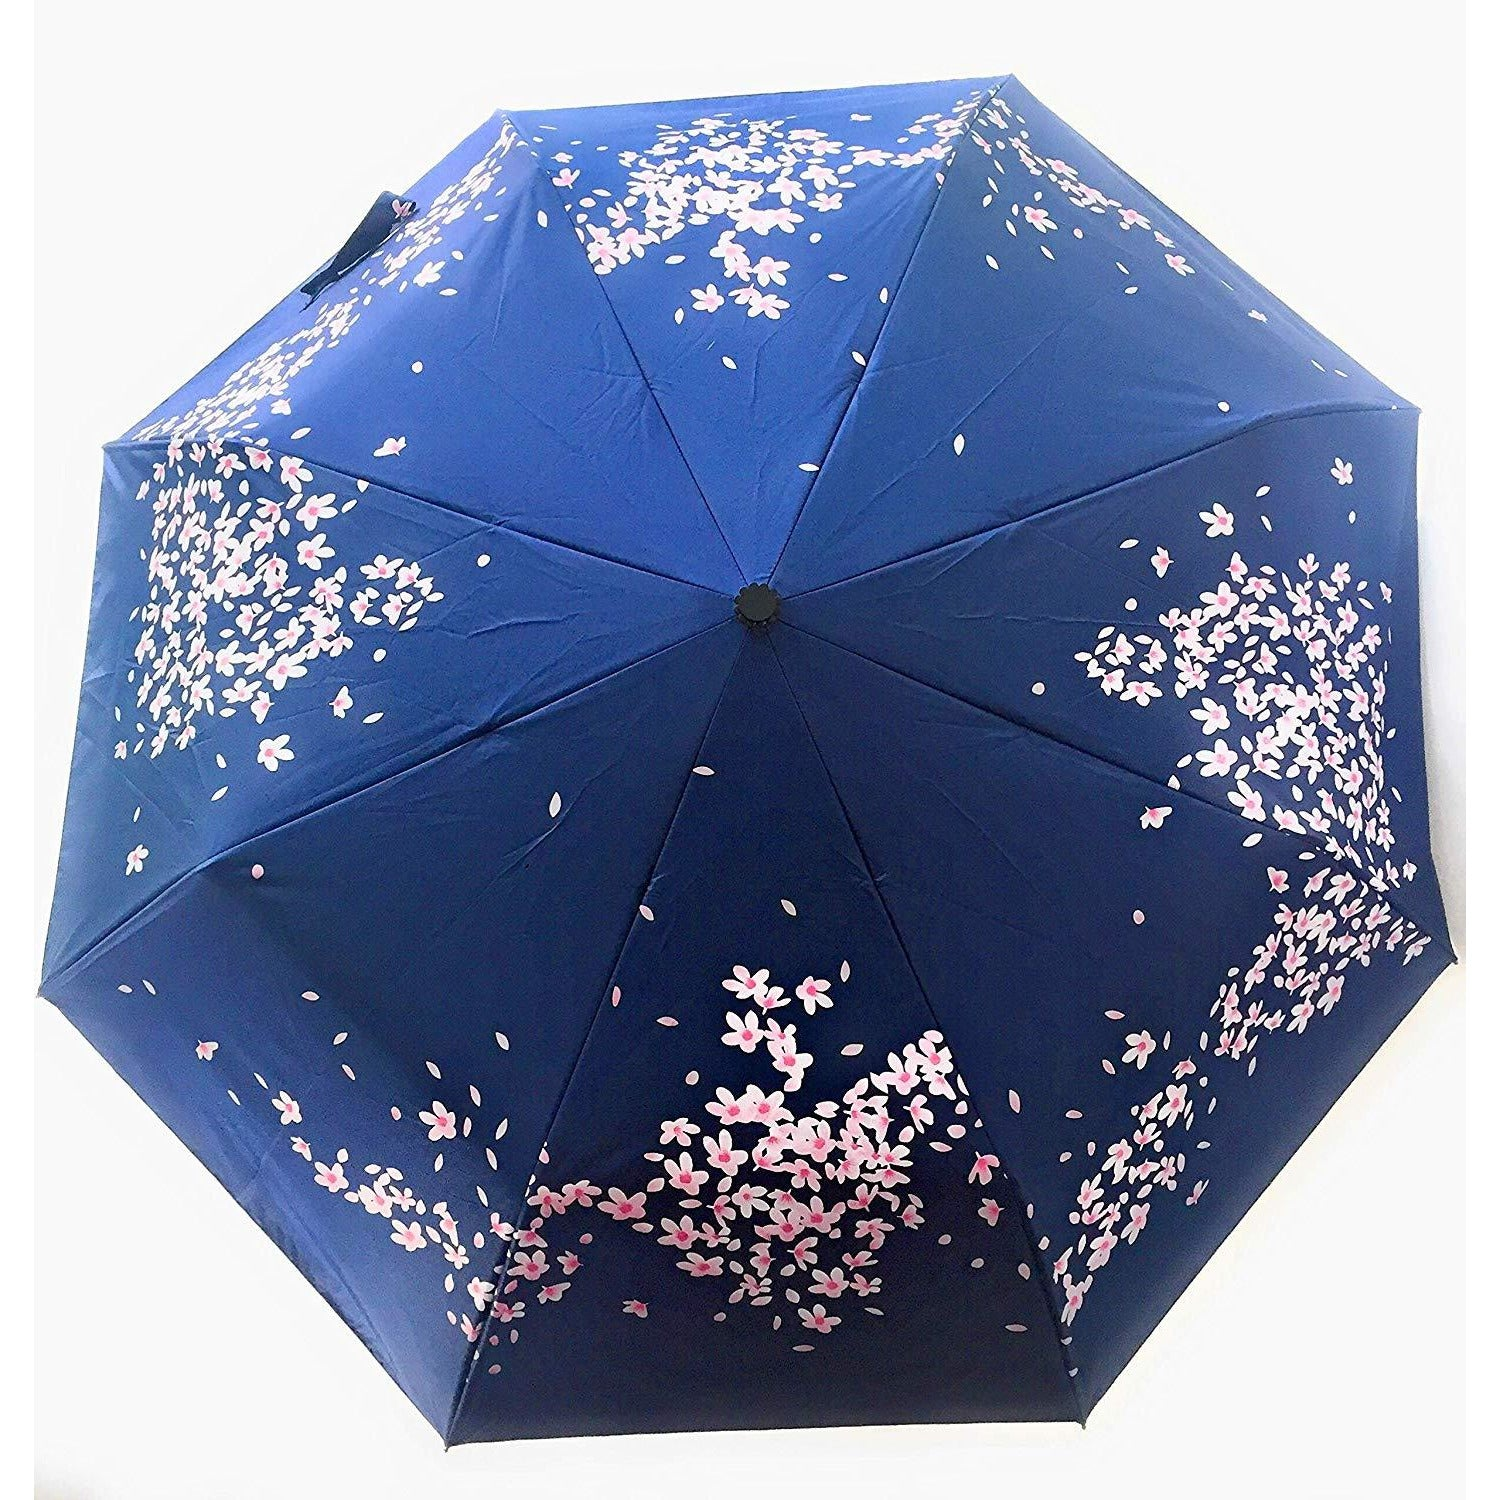 XIANGNAIZUI Quality Folding Umbrella for Women Brand Travel Anti-UV Windproof Rain Flower Female Sun Girl Parasol Pocket Umbrellas Color : 33533 Pink